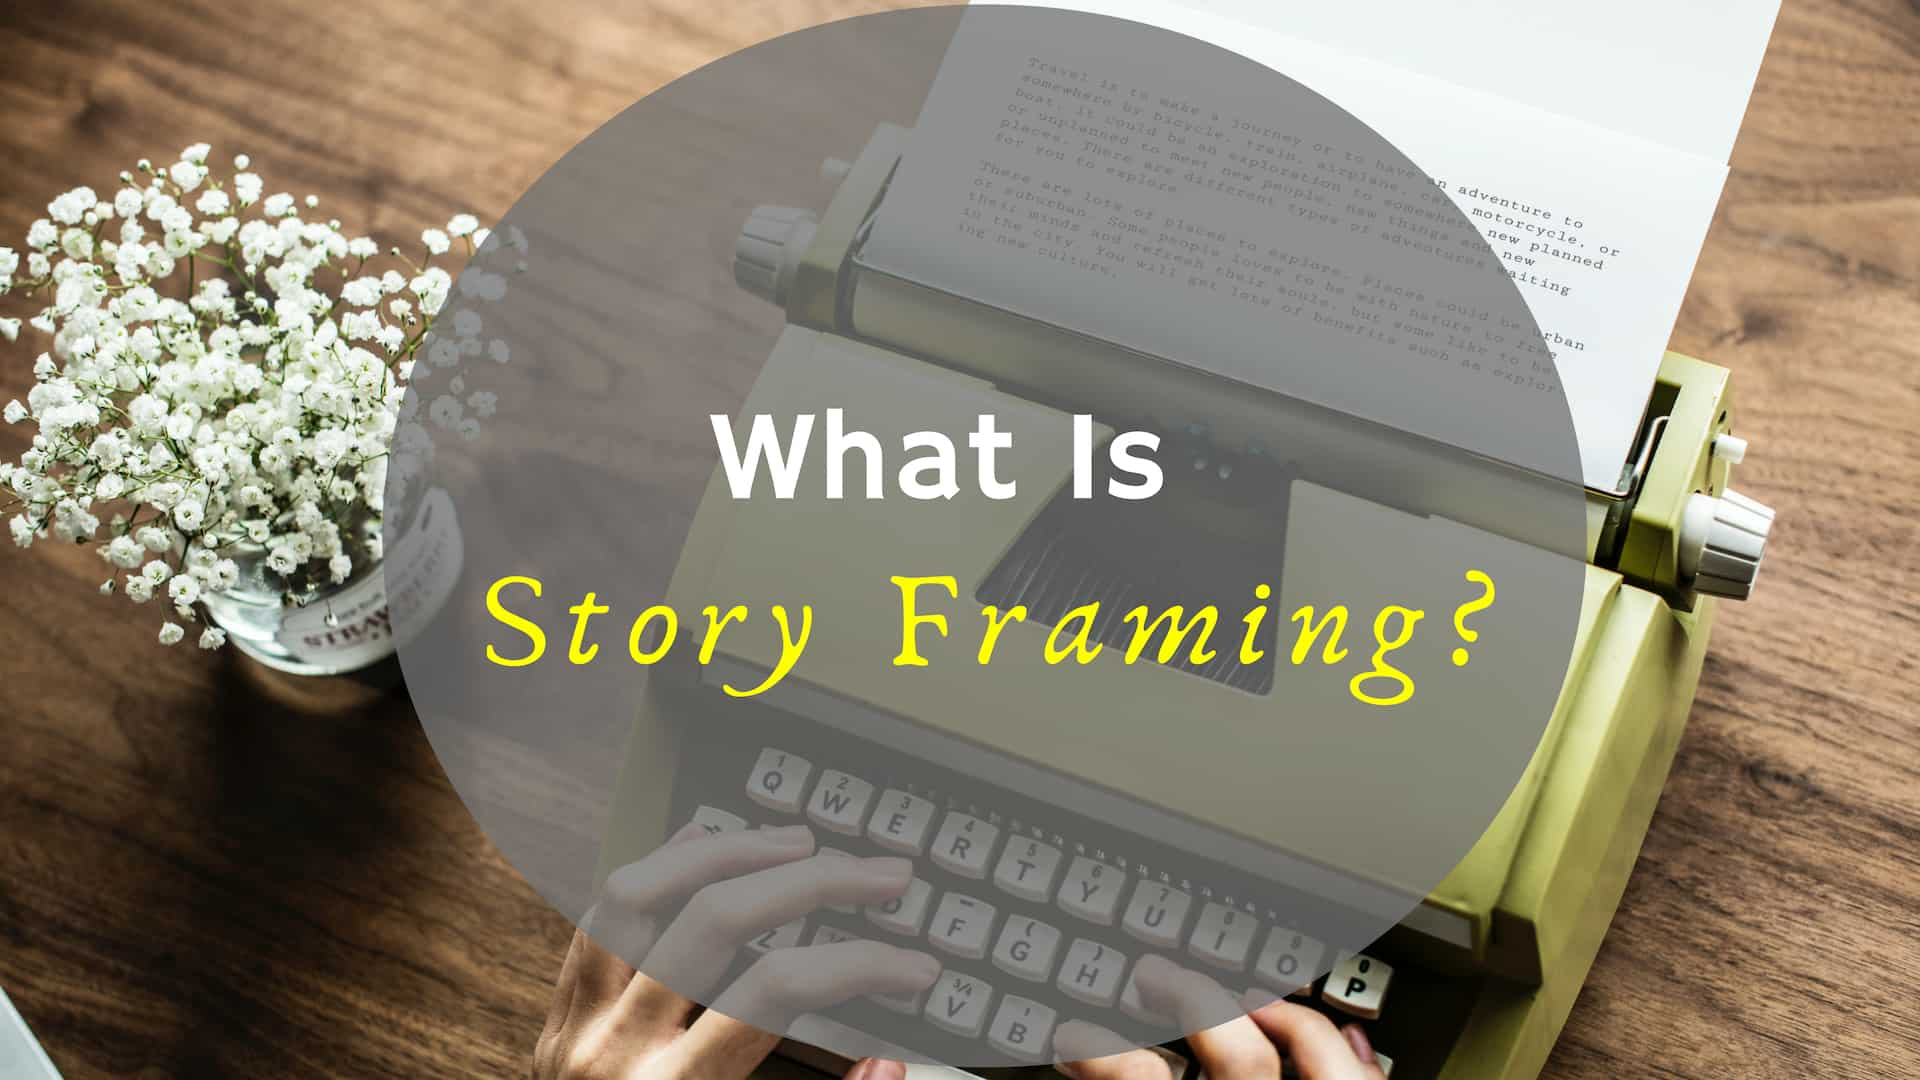 What Is Storyframing